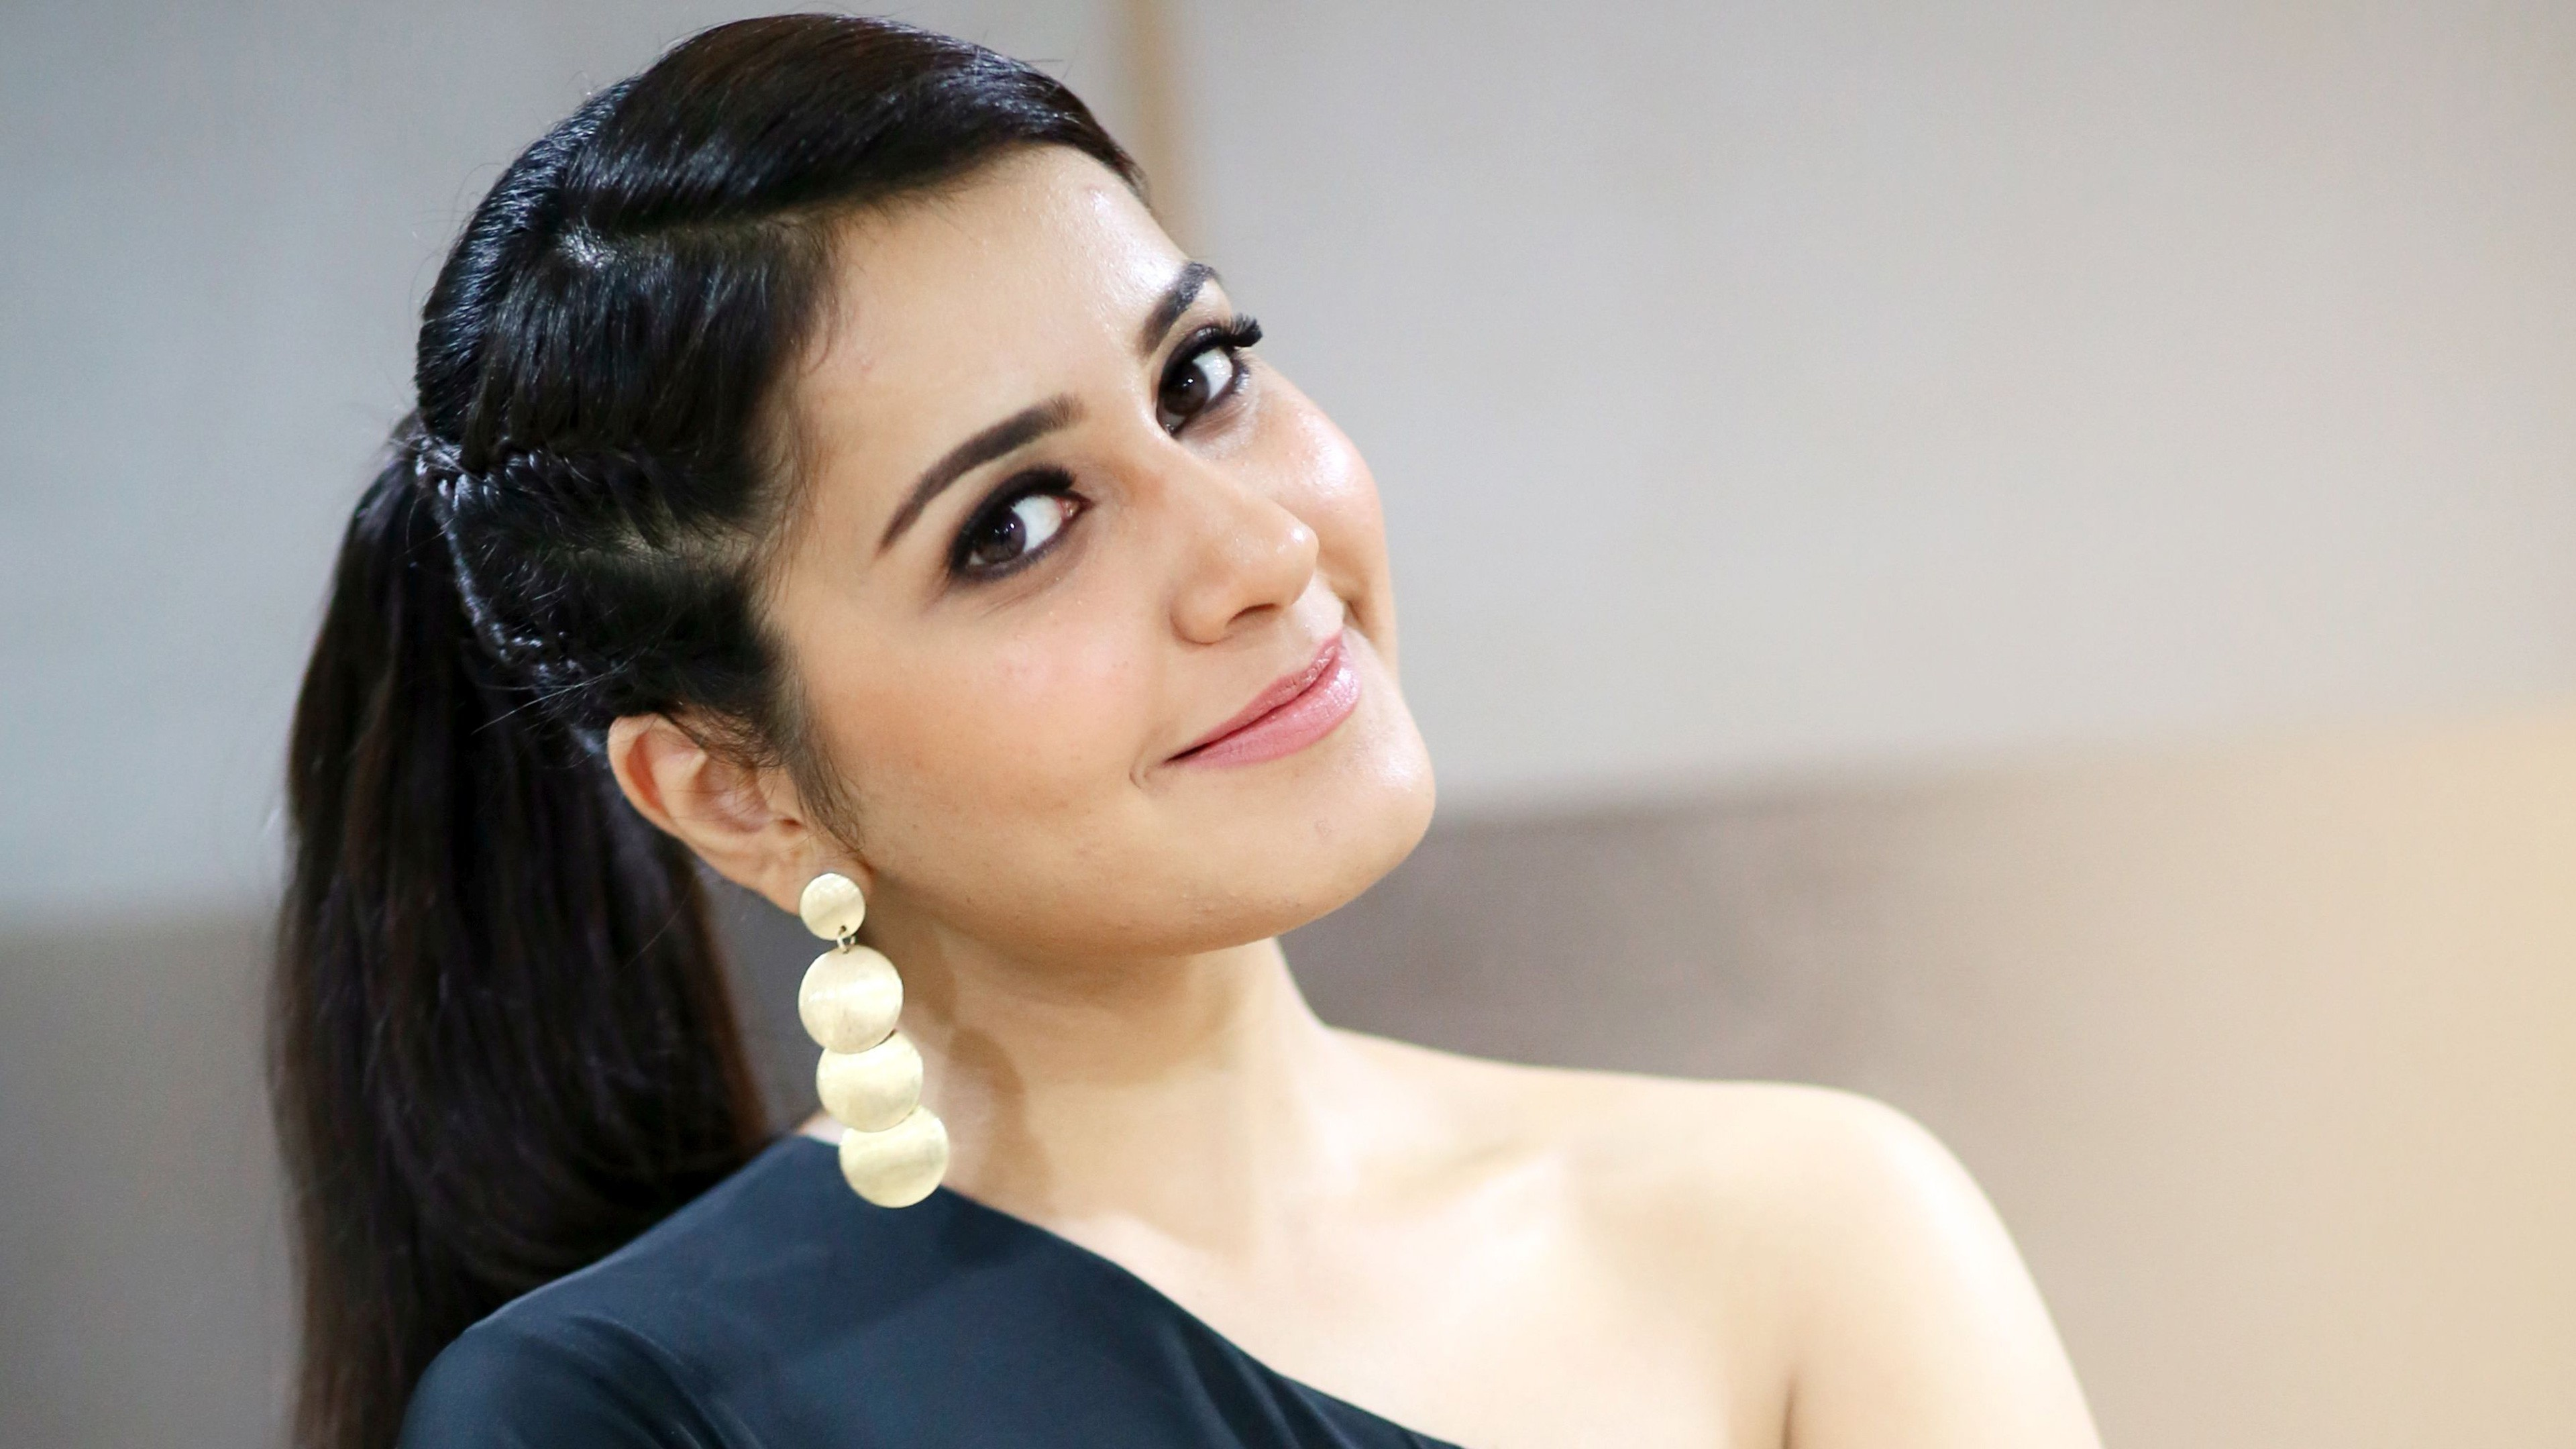 rashi khanna wallpaper 4k background